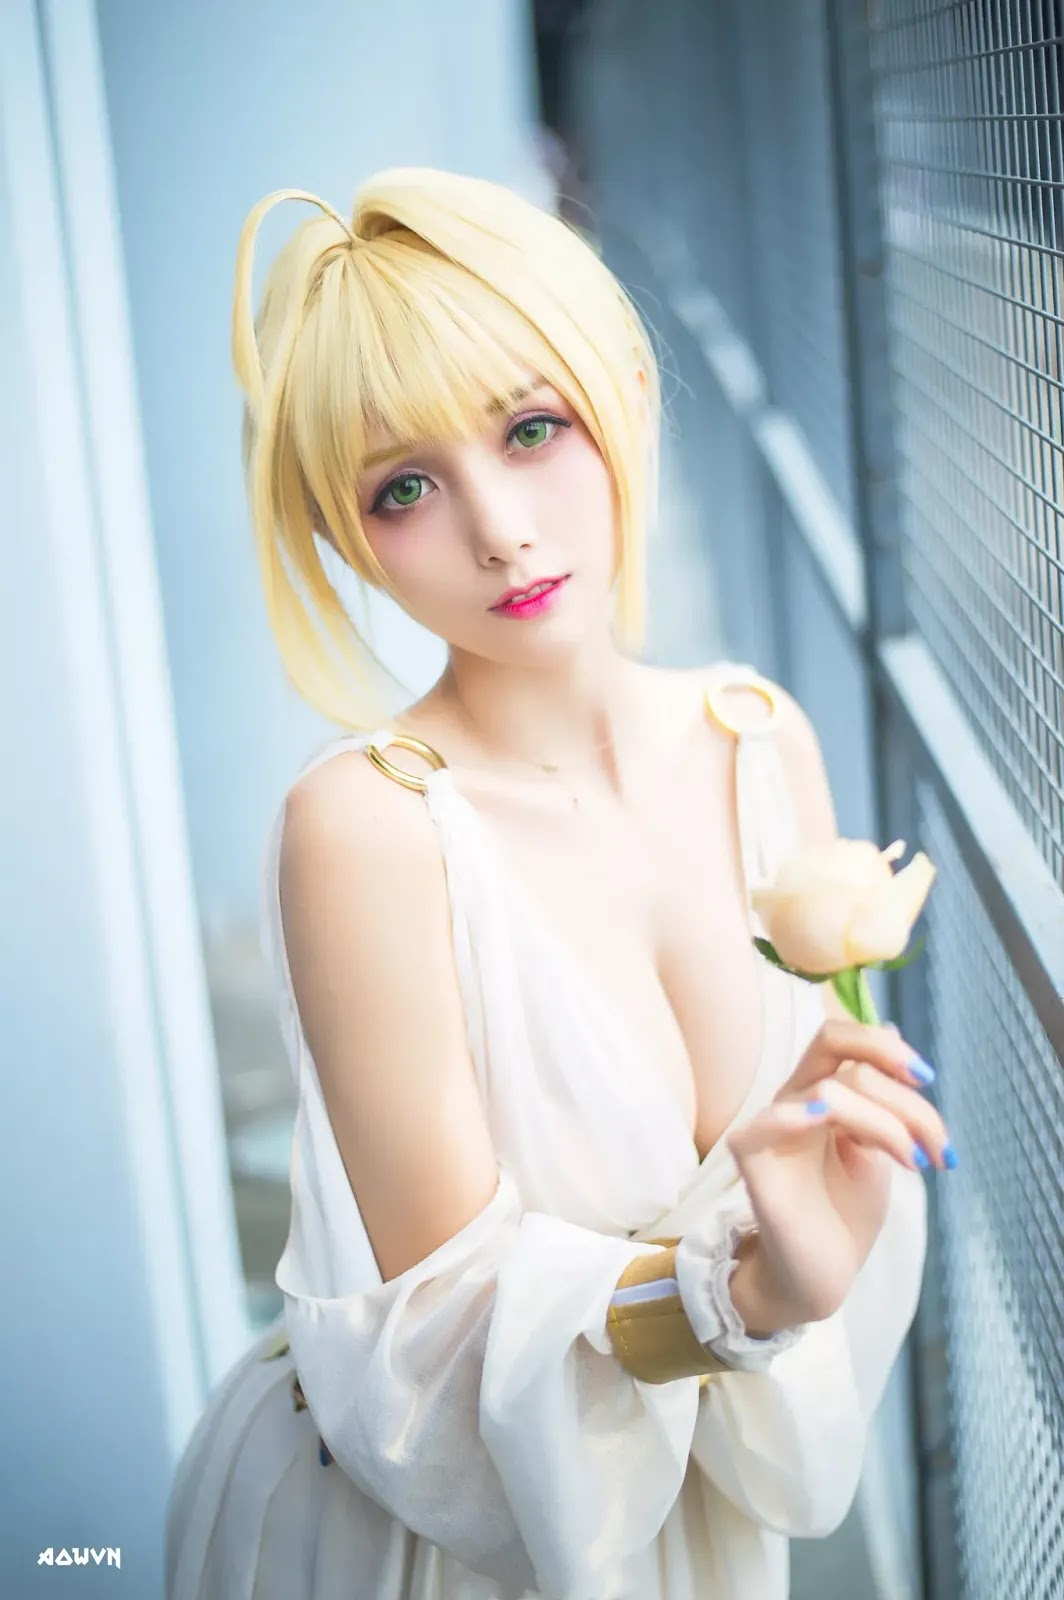 AowVN.org minz%2B%25288%2529 - [ Cosplay ] Nero - Saber anime Fate by Xia Mei Jiang tuyệt đẹp | AowVN Wallpapers